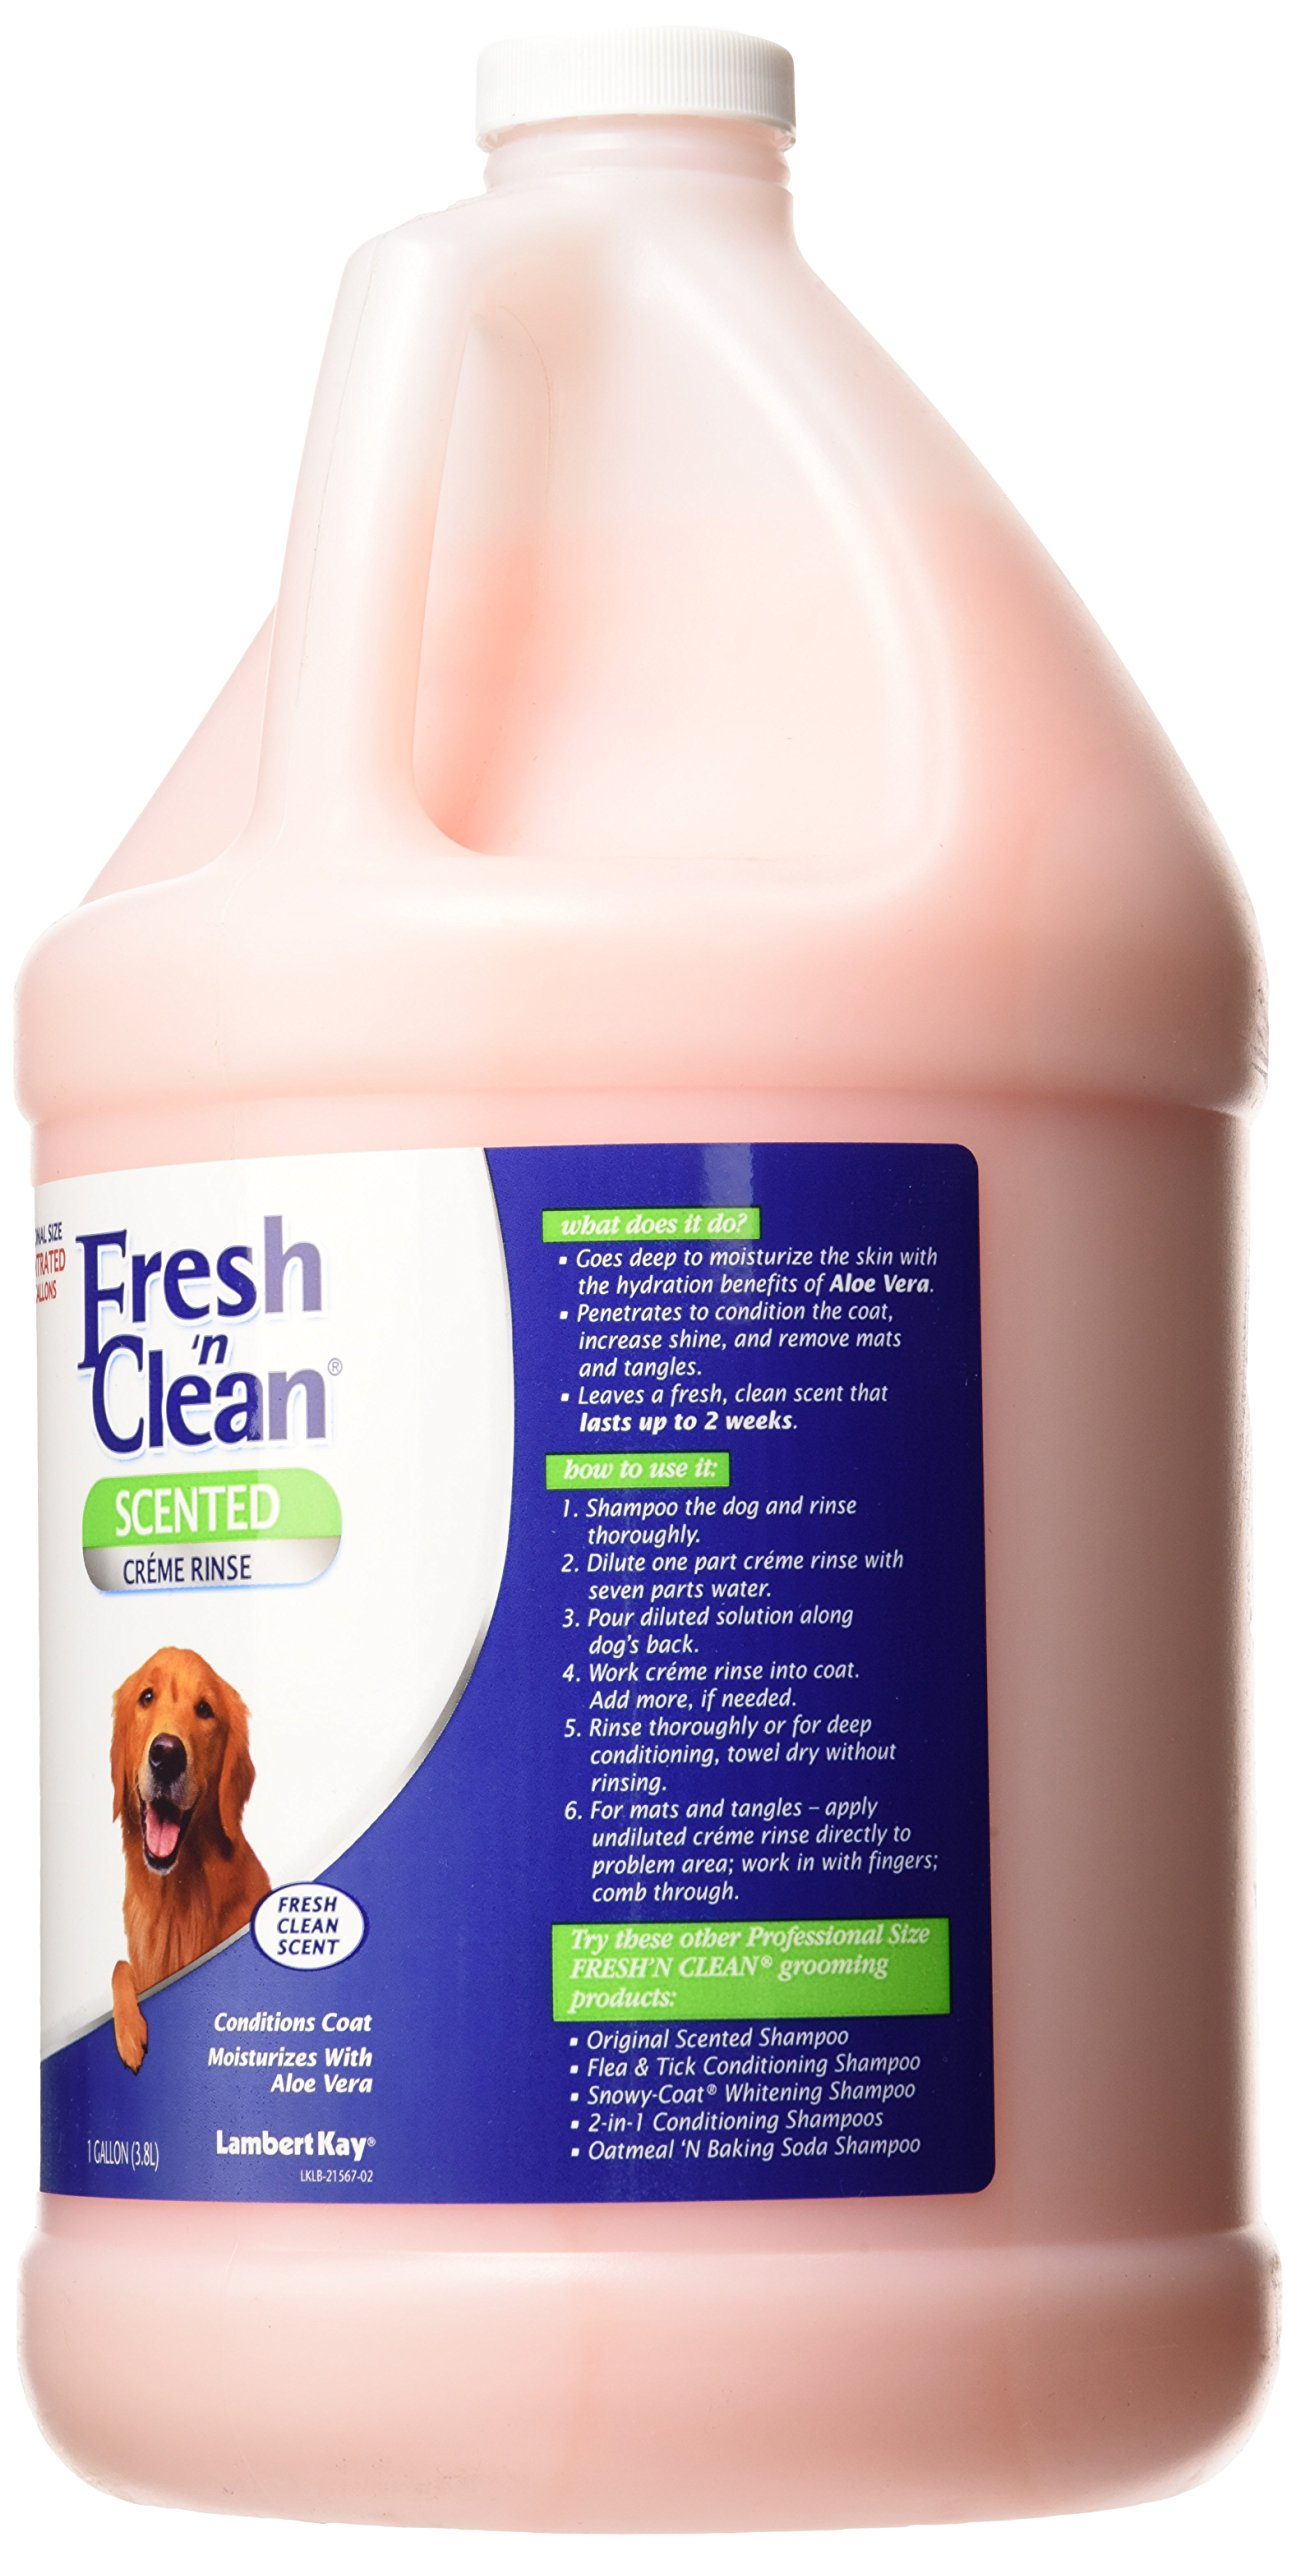 Lambert Kay Fresh'n Clean Dog Creme Rinse, 1-Gallon by Lambert Kay Fresh n Clean